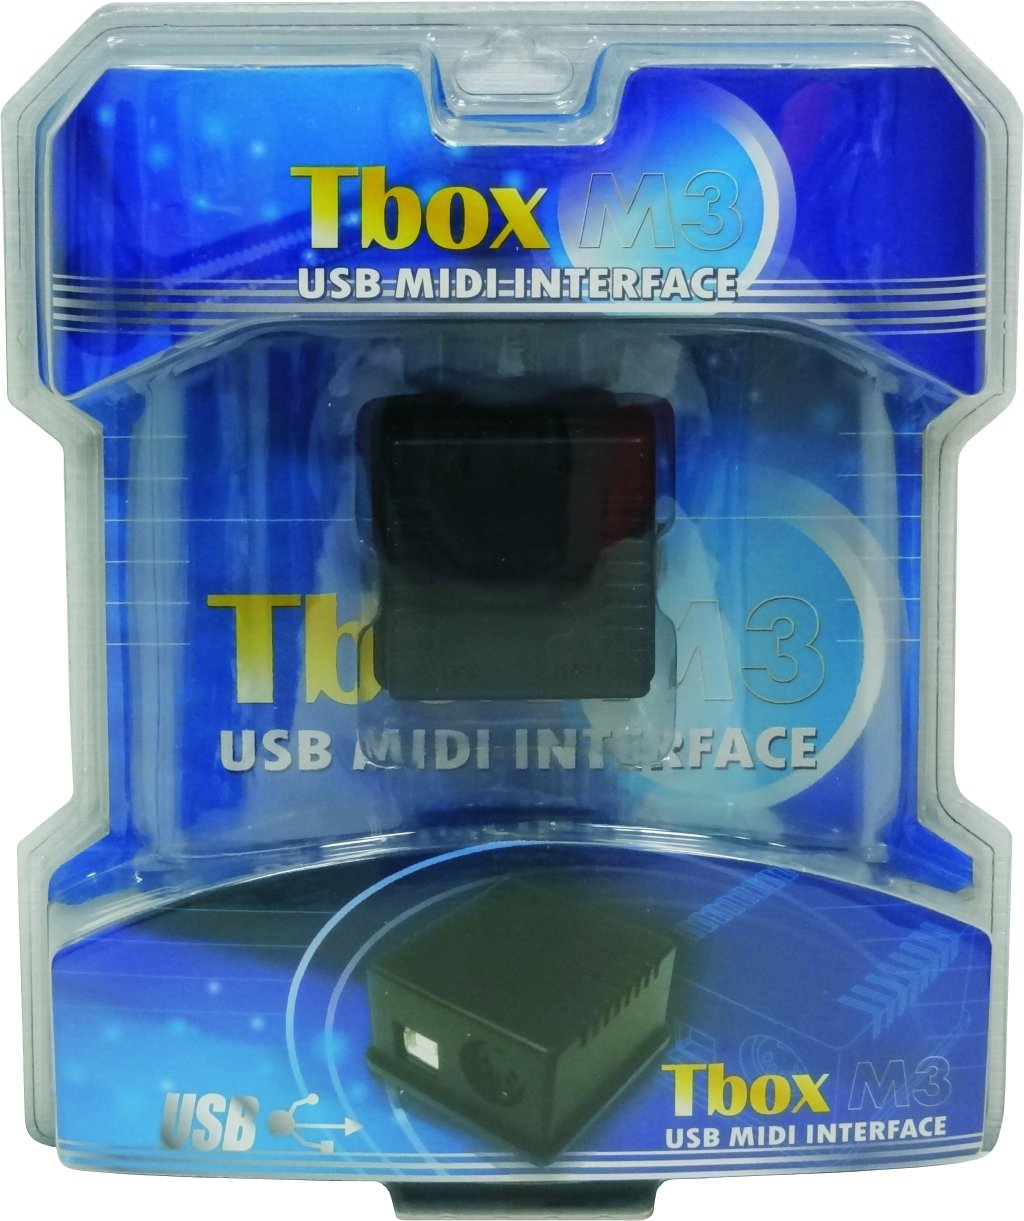 Tbox M3 in, out, thru USB MIDI interface by Midiplus